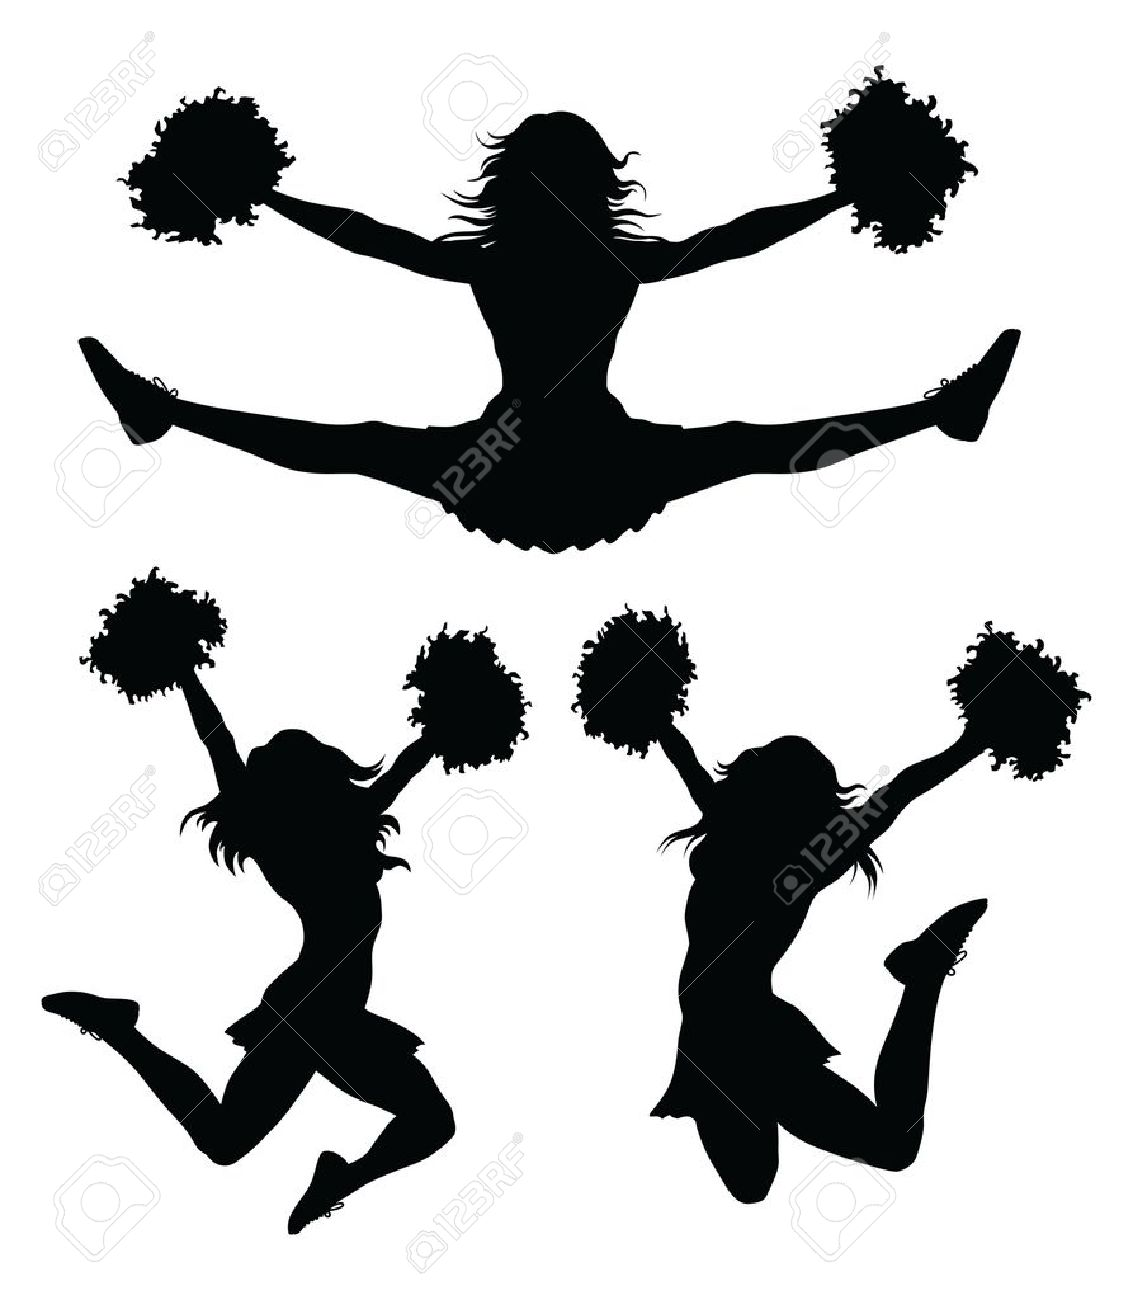 cheer silhouette at getdrawings com free for personal use cheer rh getdrawings com cheerleading silhouette clip art Volleyball Net Clip Art